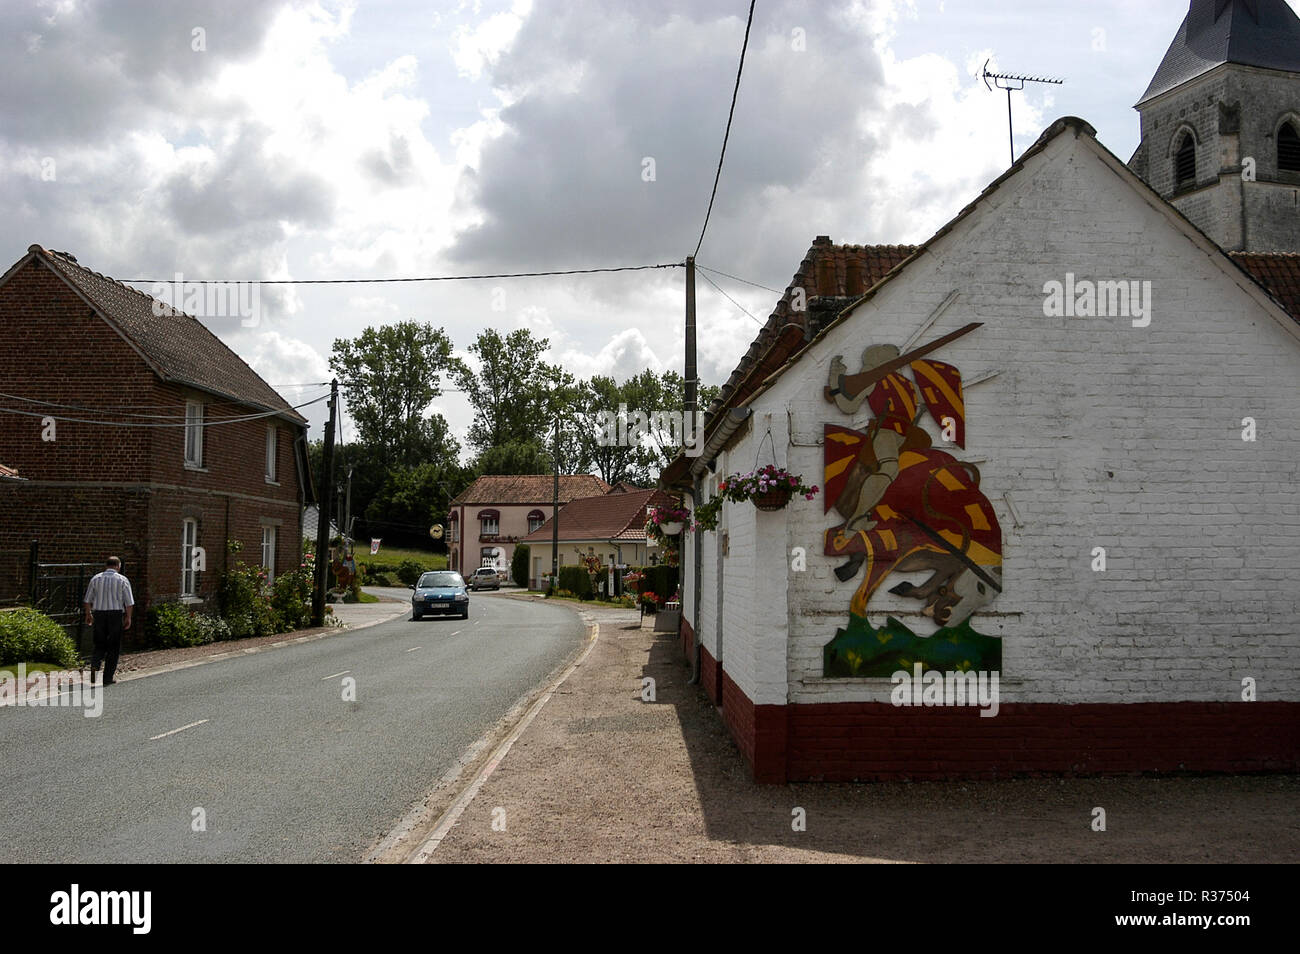 A painted mural illustrating the Battle of the Hundred Years War in the village of Azincourt, in the commune of the Pas-de-Calais department in northe - Stock Image